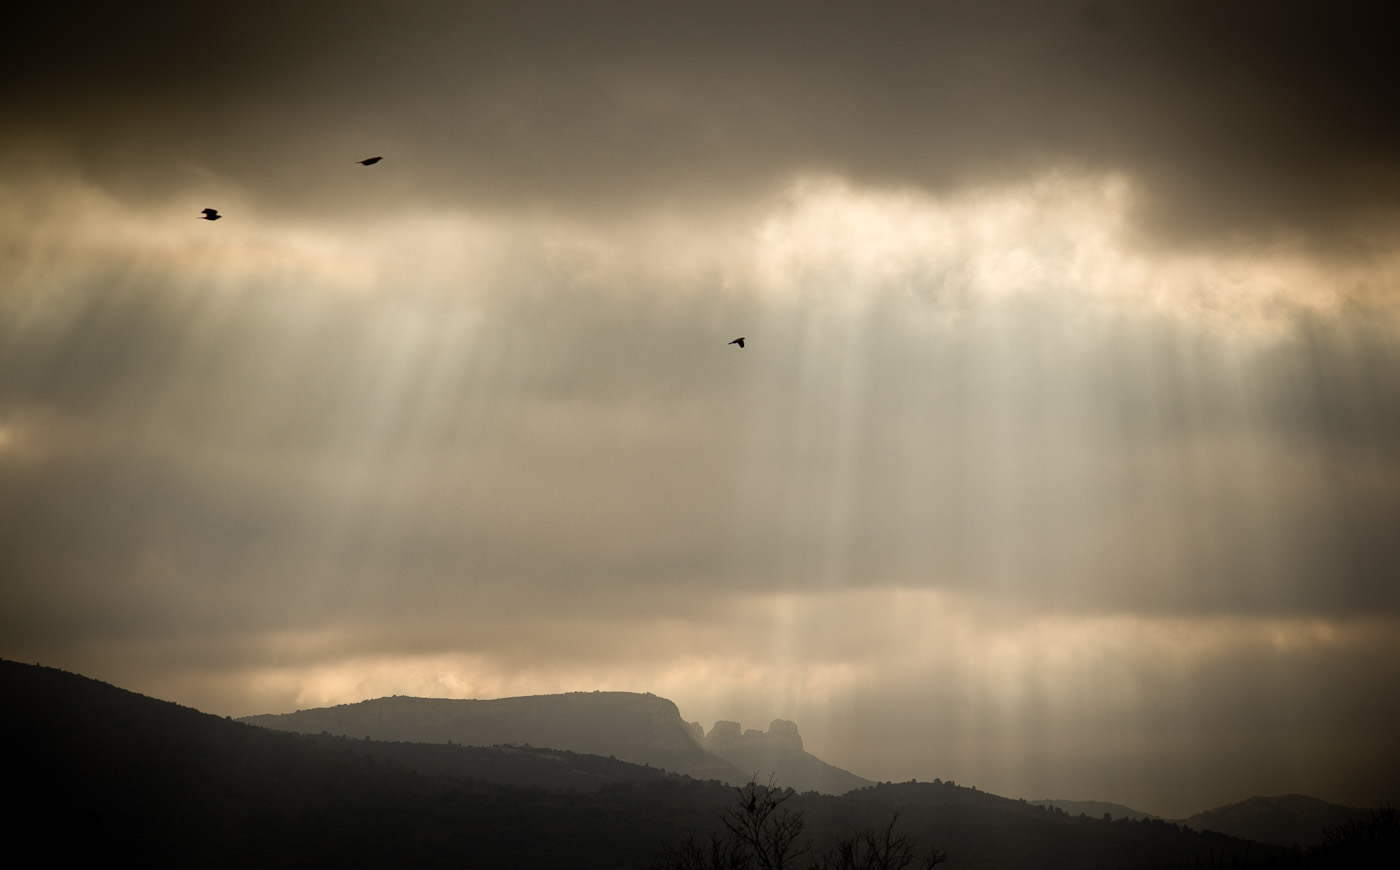 Sun rays beneath dark clouds streak the saky and the hills of Provence. Sony NEX-5n and Leica M Elmarit 90mm f/2.8